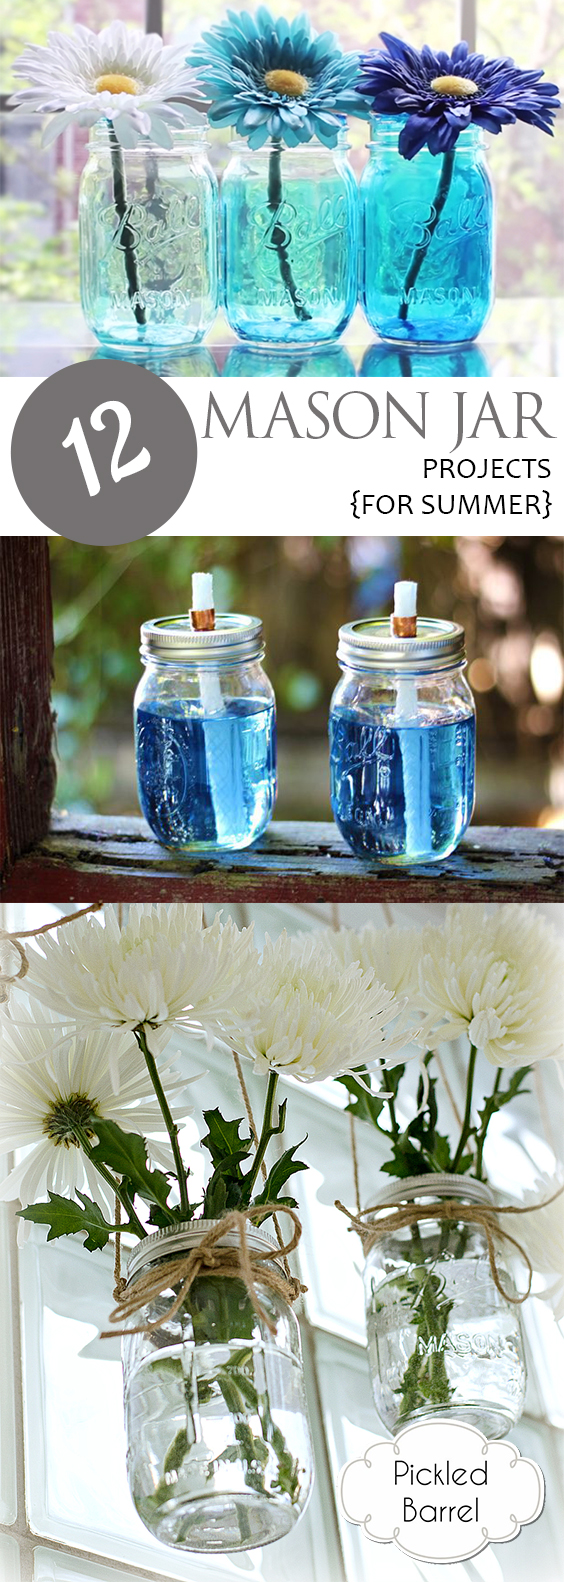 12 Mason Jar Projects {For Summer}| Mason Jar Craft Projects, Craft Projects for Summer, Mason Jar Projects, Mason Jar DIY Projects, DIY Projects for Summer, Mason Jar Crafts, Popular Pin